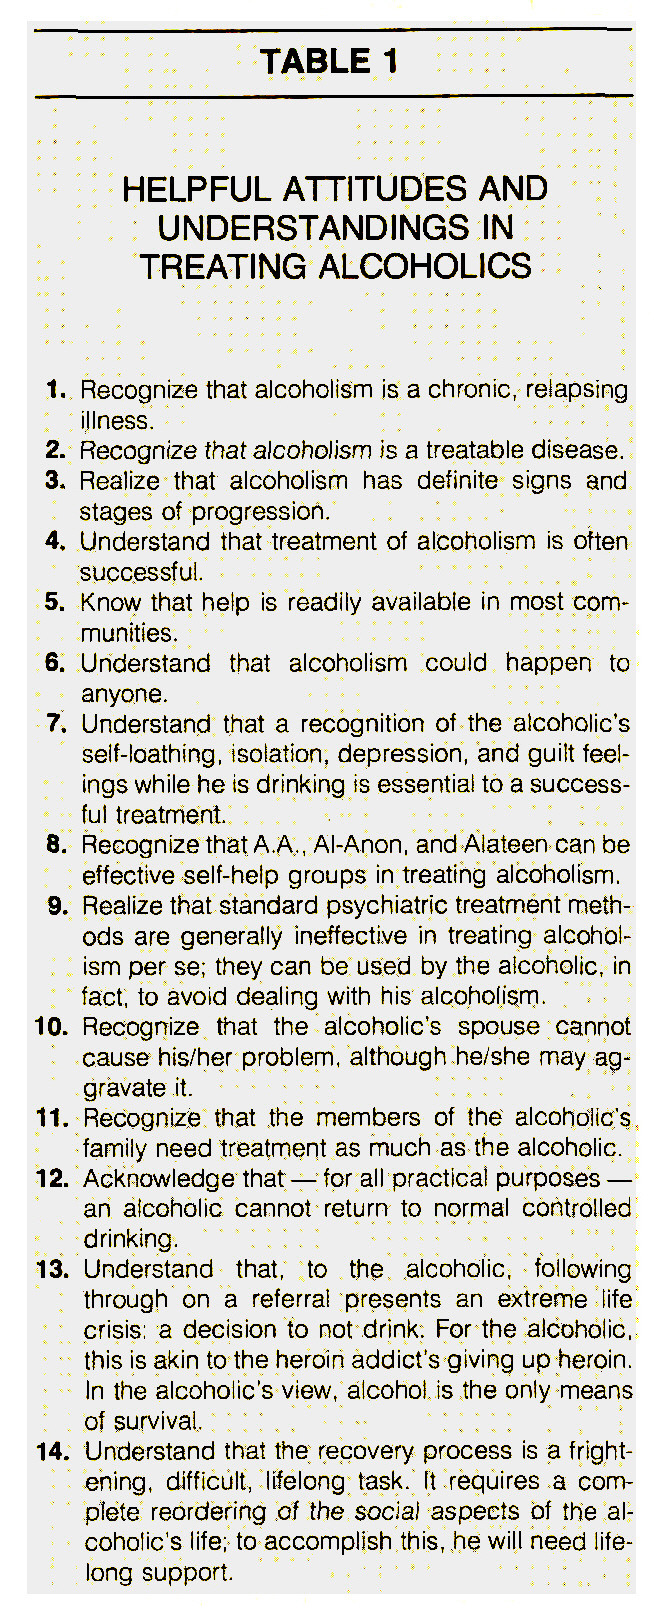 TABLE 1HELPFUL ATTITUDES AND UNDERSTANDINGS IN TREATING ALCOHOLICS